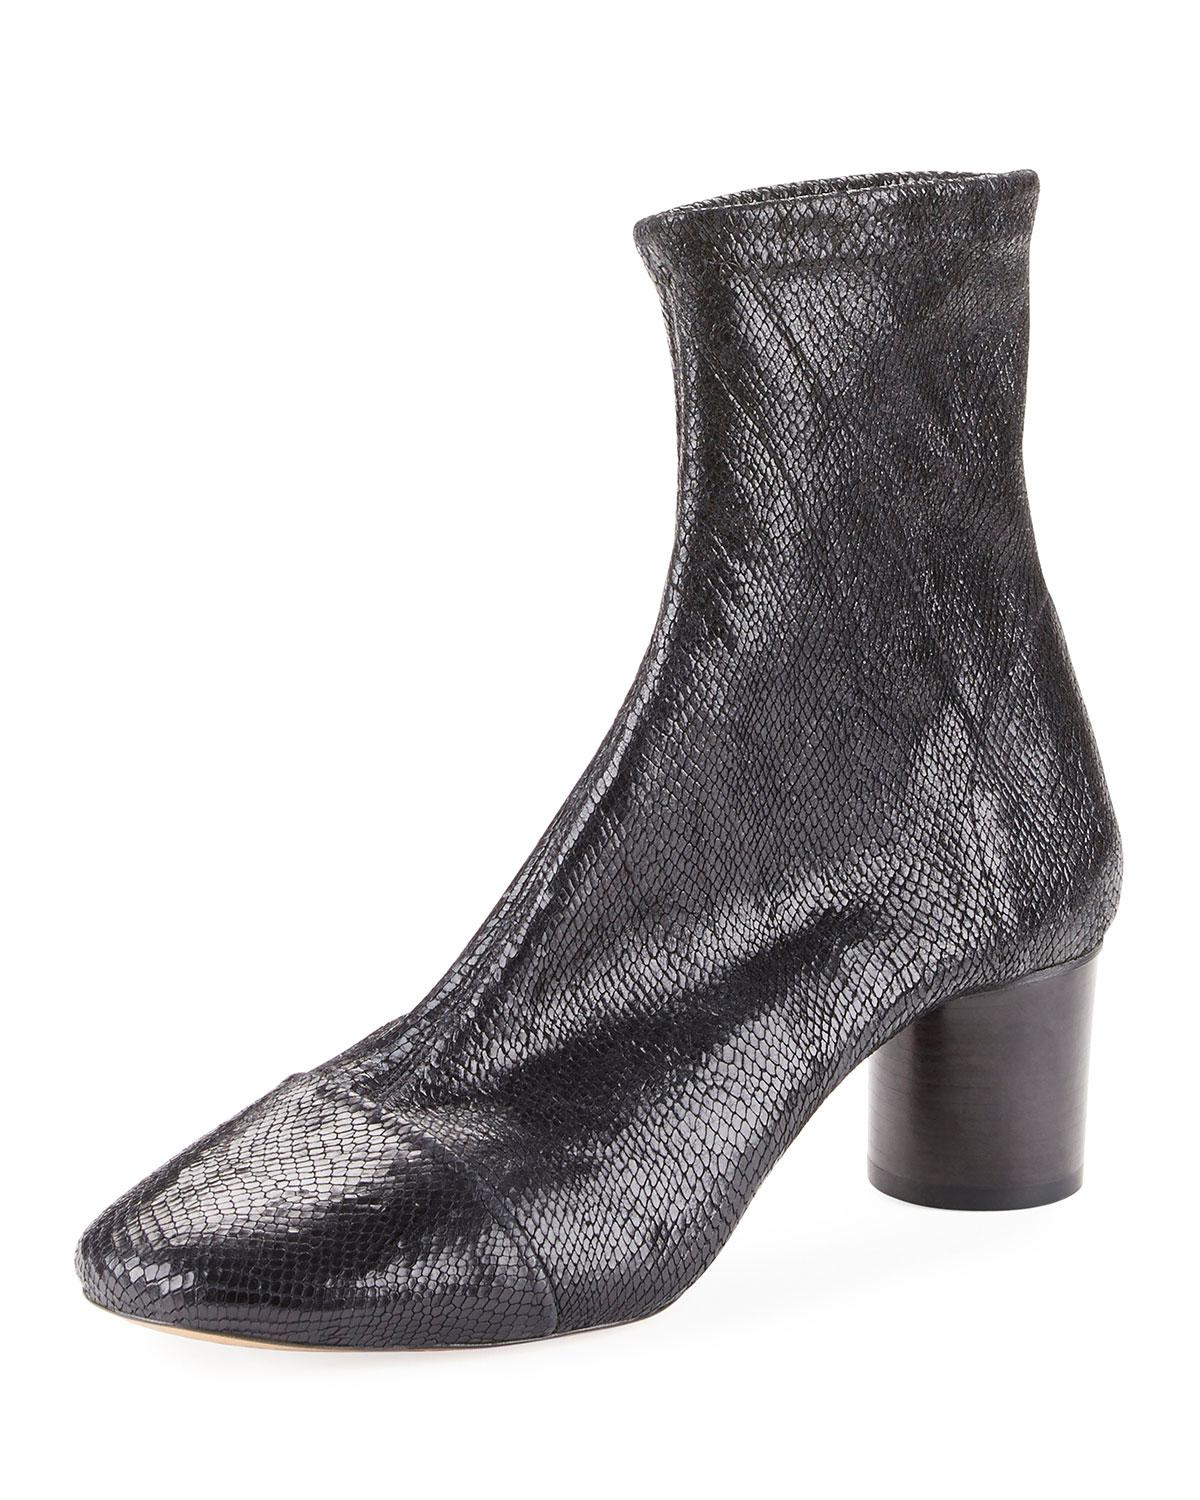 61a416a92d7 Isabel Marant Datsy Snake-Embossed Booties In Black | ModeSens